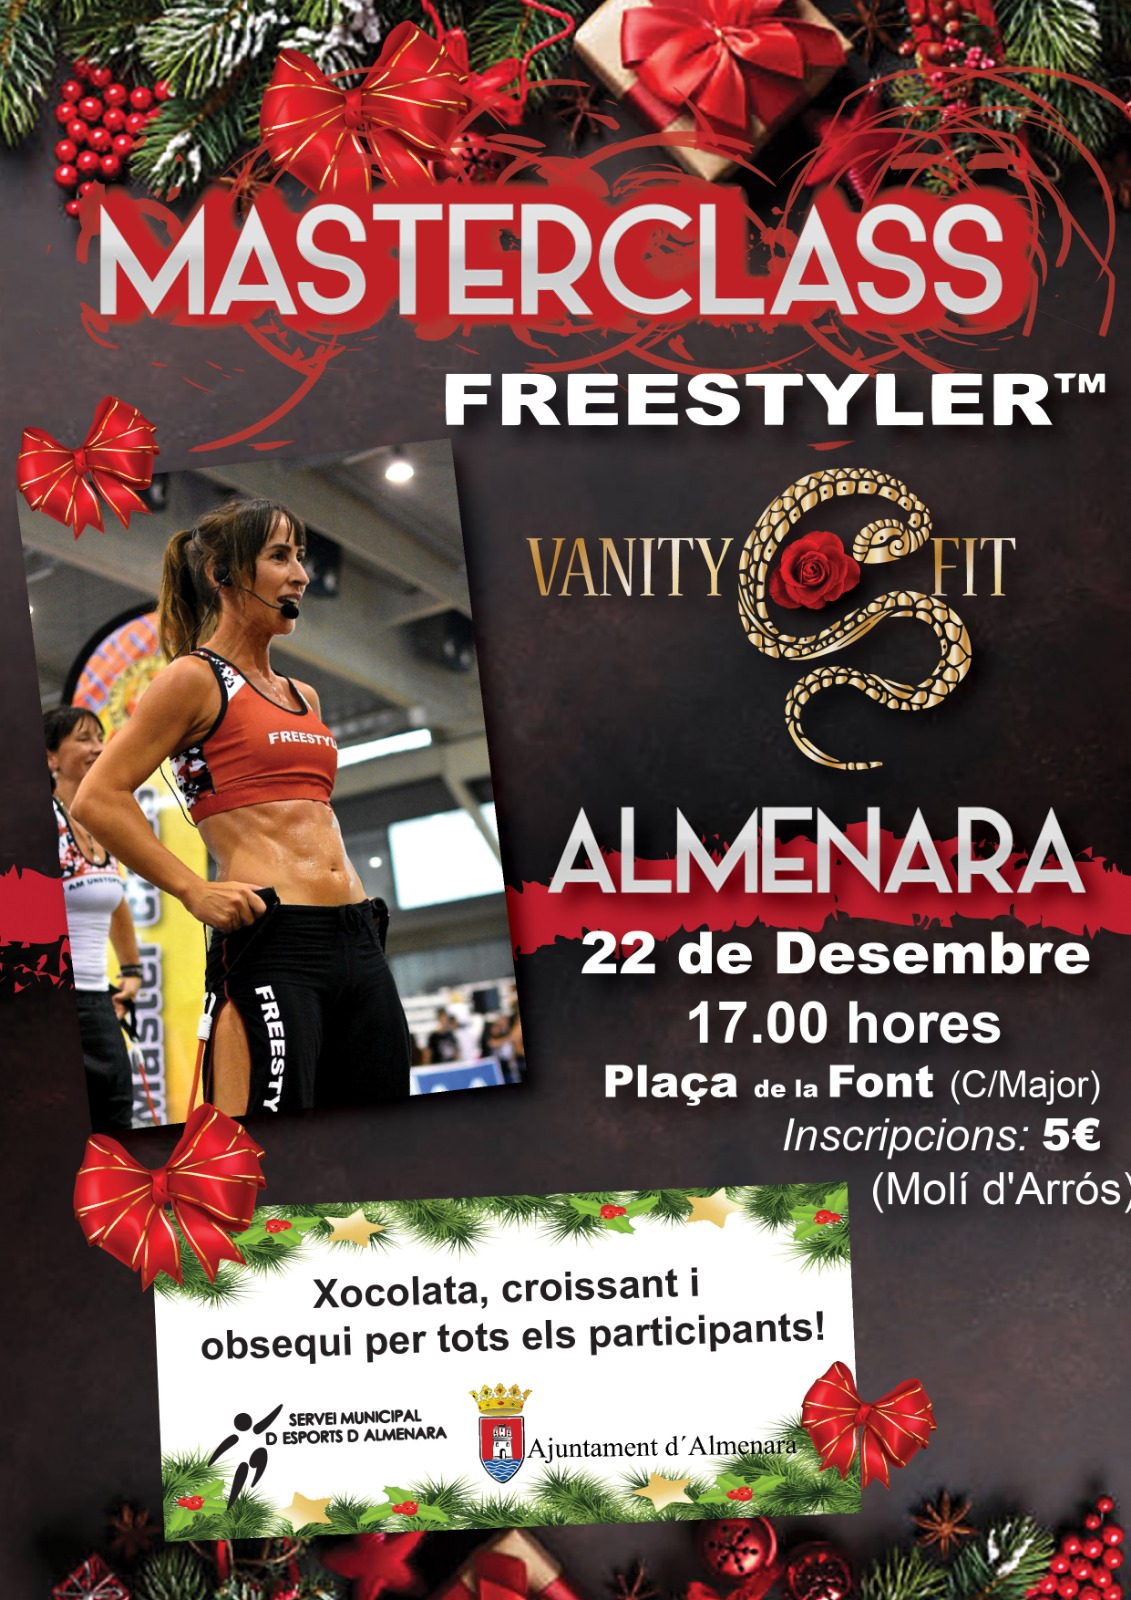 masterclass freestyler